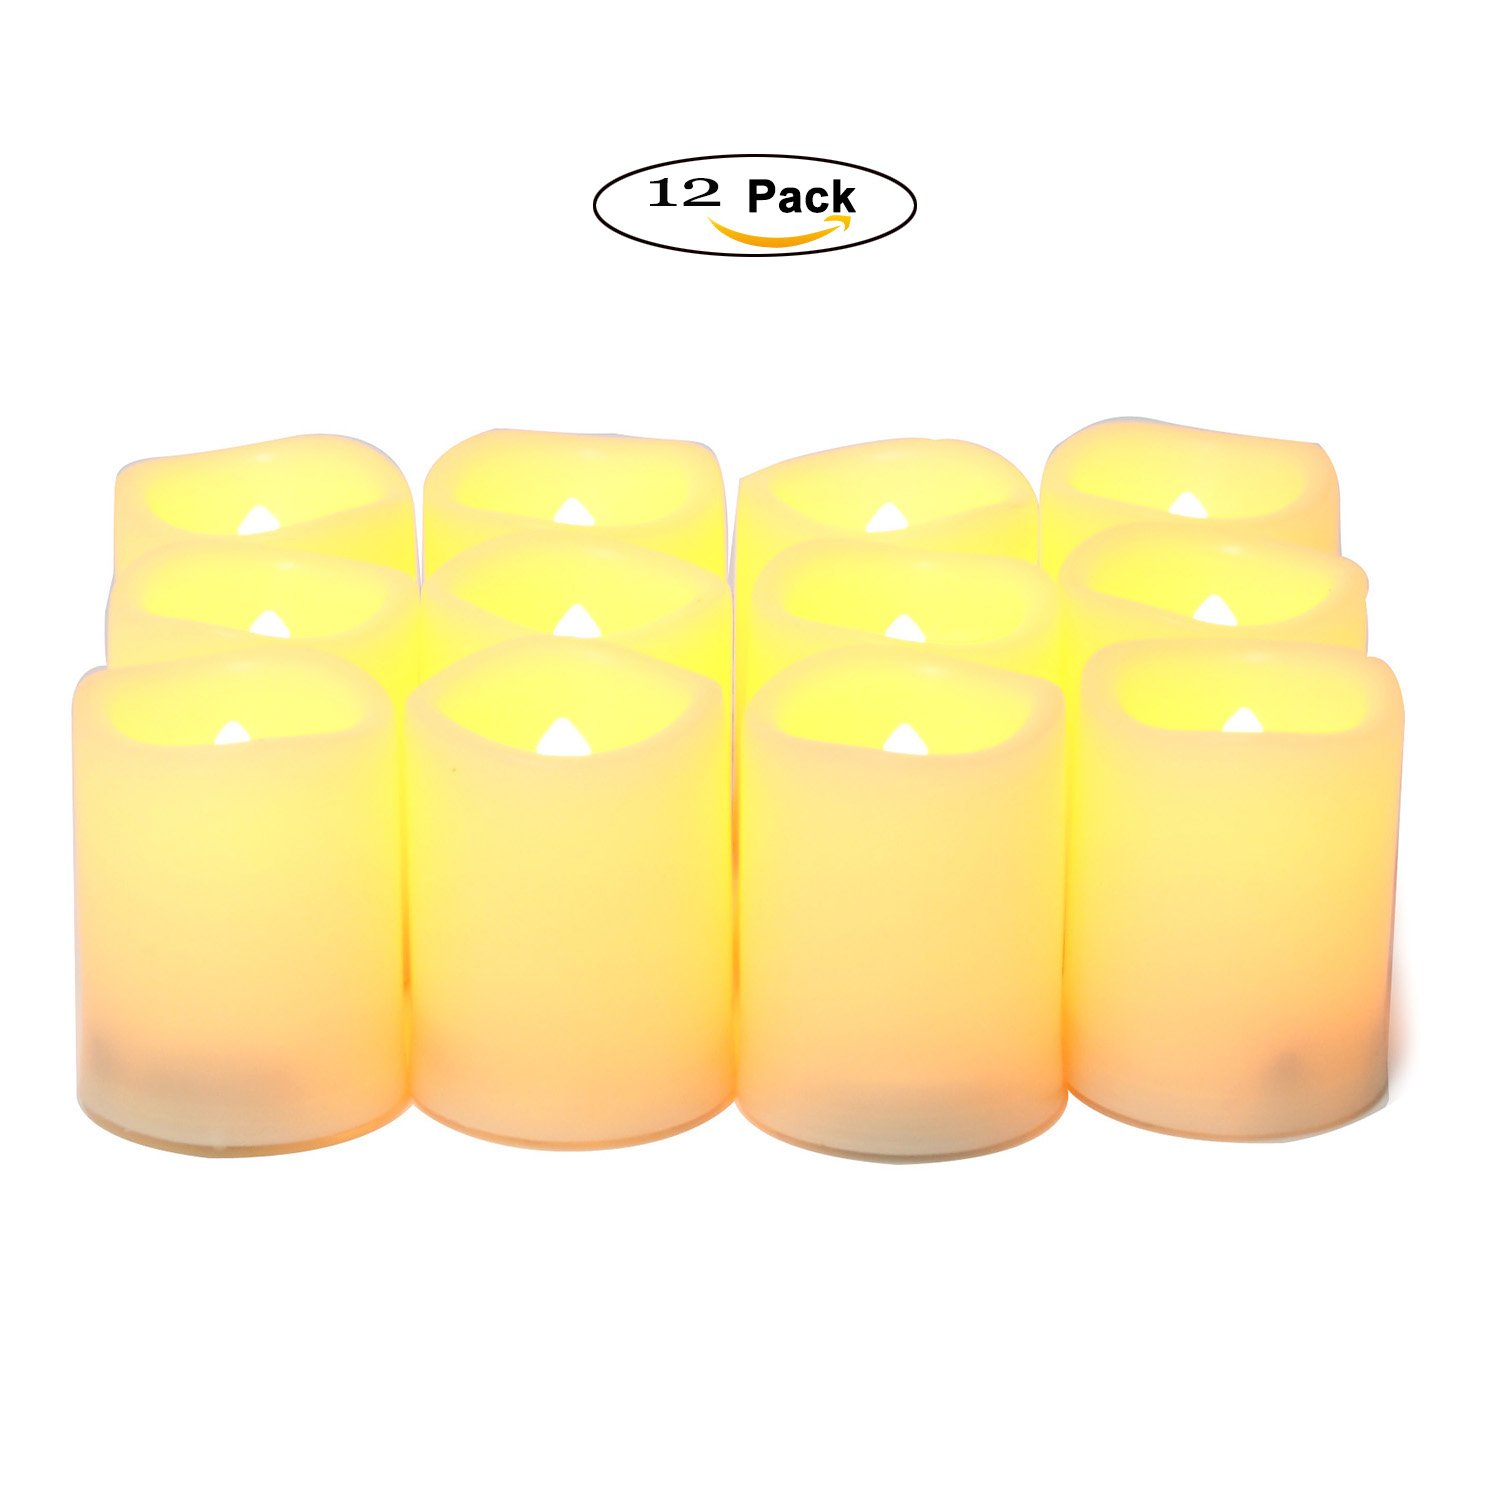 UPBASICN 12 Pieces LED Flameless Battery-operated Votives Candles/Unscented LED Candles/Flameless Candles/Flickering Tealights for Garden wedding,Party,Festival Decorations etc (Batteries Included)